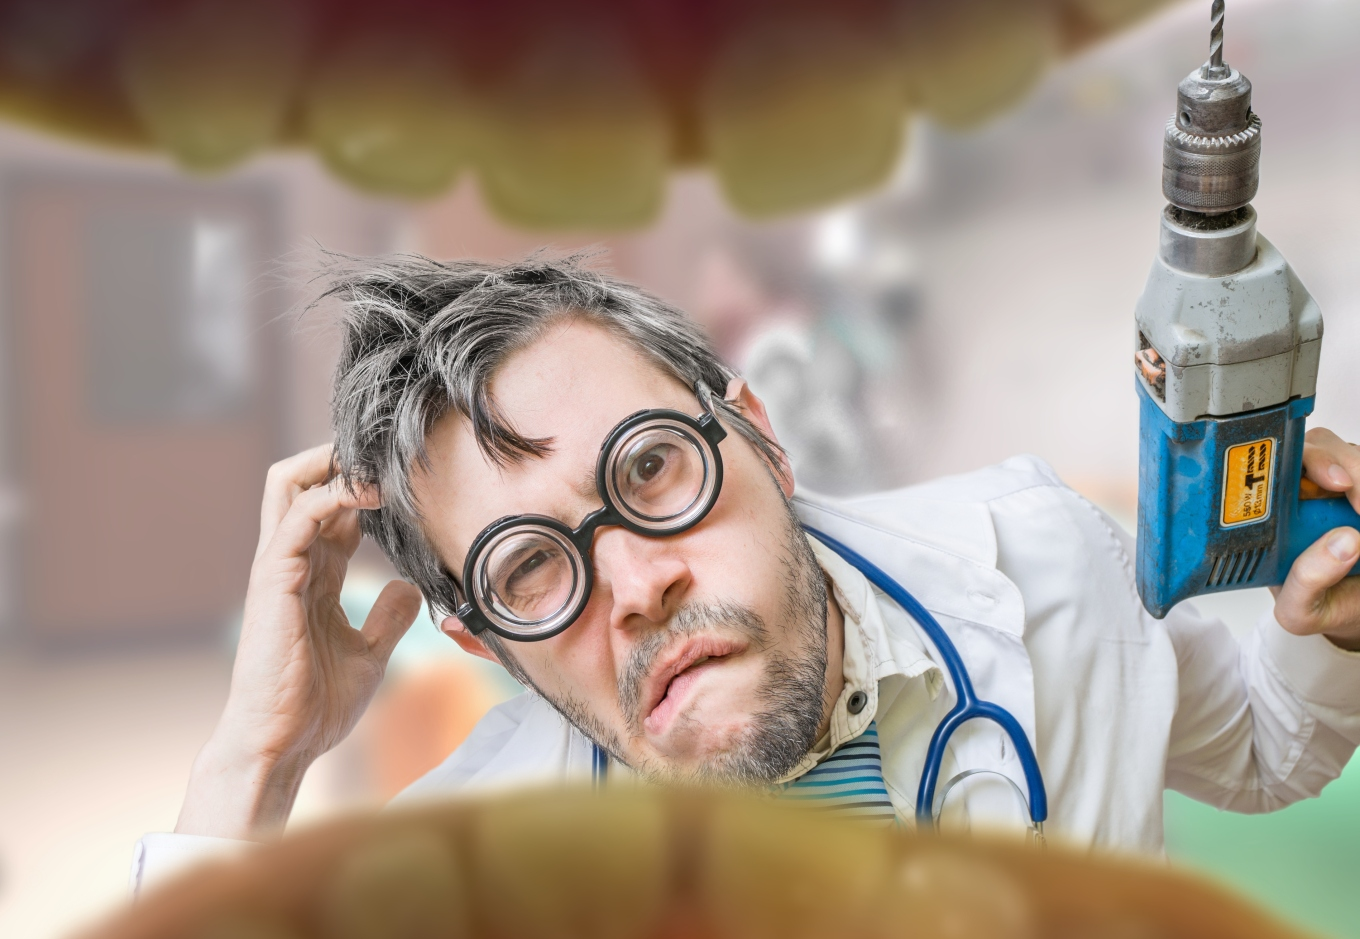 Uncertain crazy dentist doctor looks into mouth to drill tooth